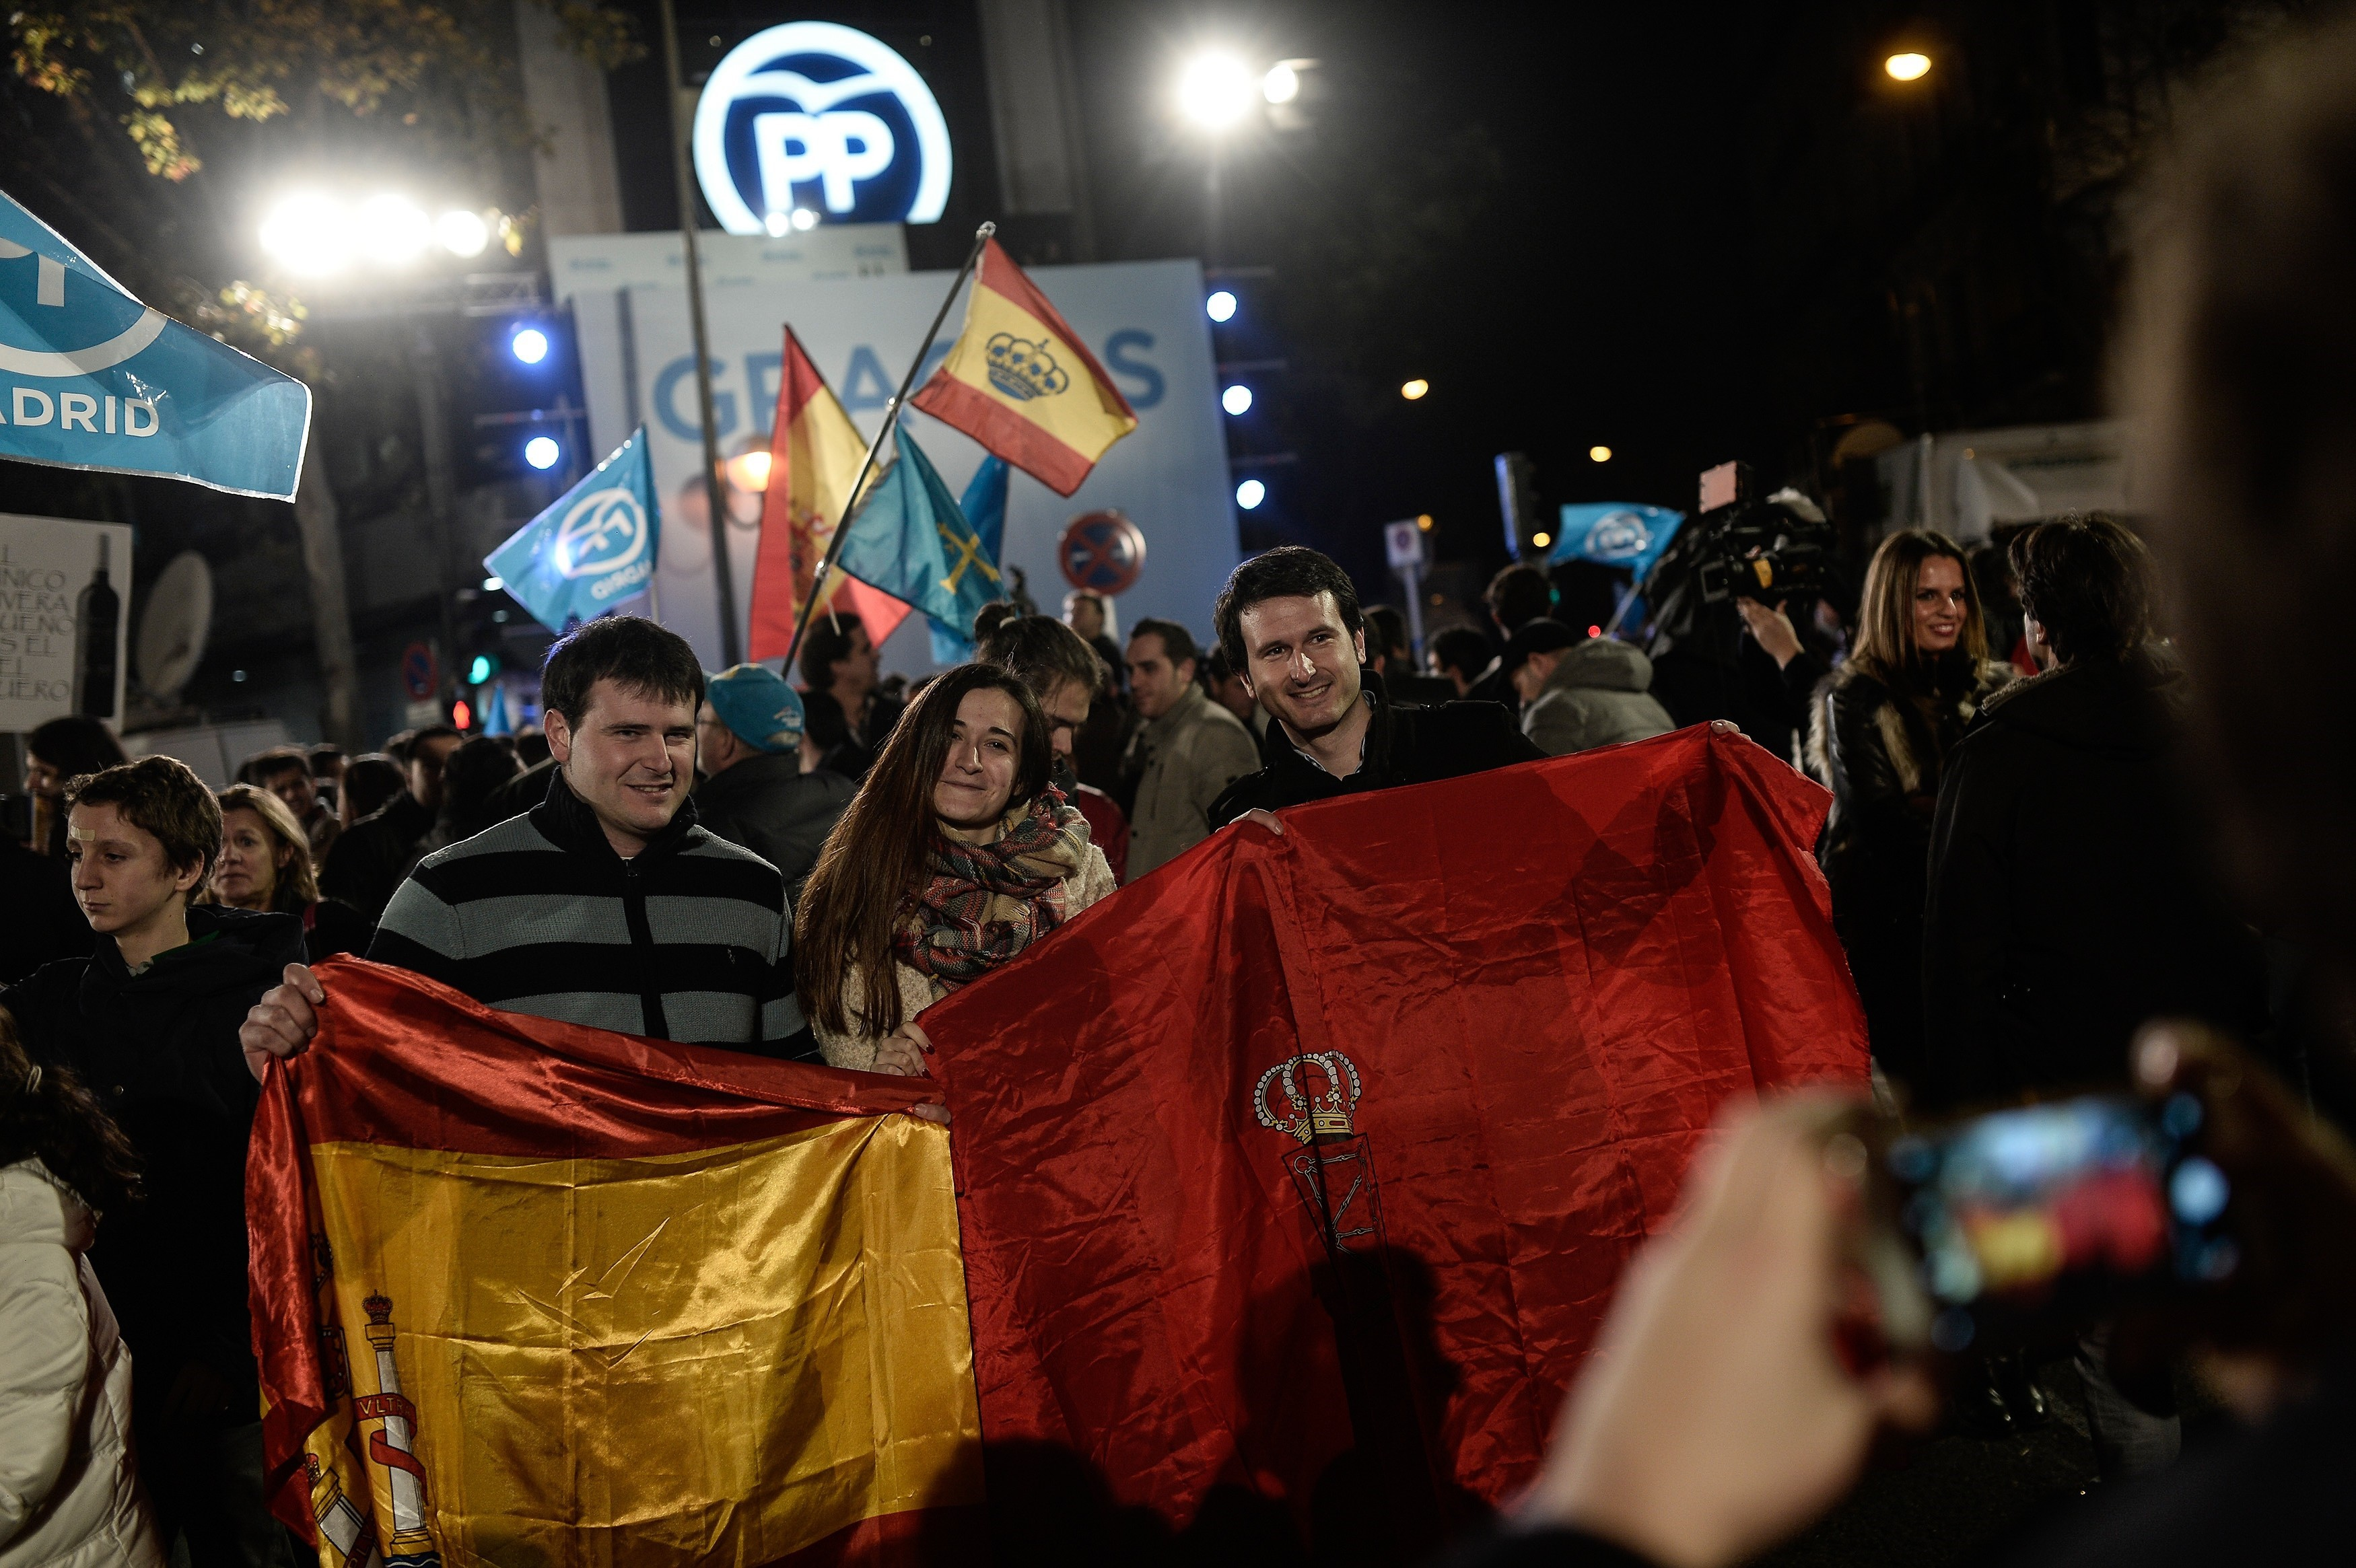 People gather as Spanish Prime Minister and Popular Party (PP) leader, Mariano Rajoy (not seen) gives a speech at his party headquarters'  balcony after Rajoy's party won the most votes of the General Elections during a public meeting with supporters in Madrid, Spain on Dec. 21, 2015.